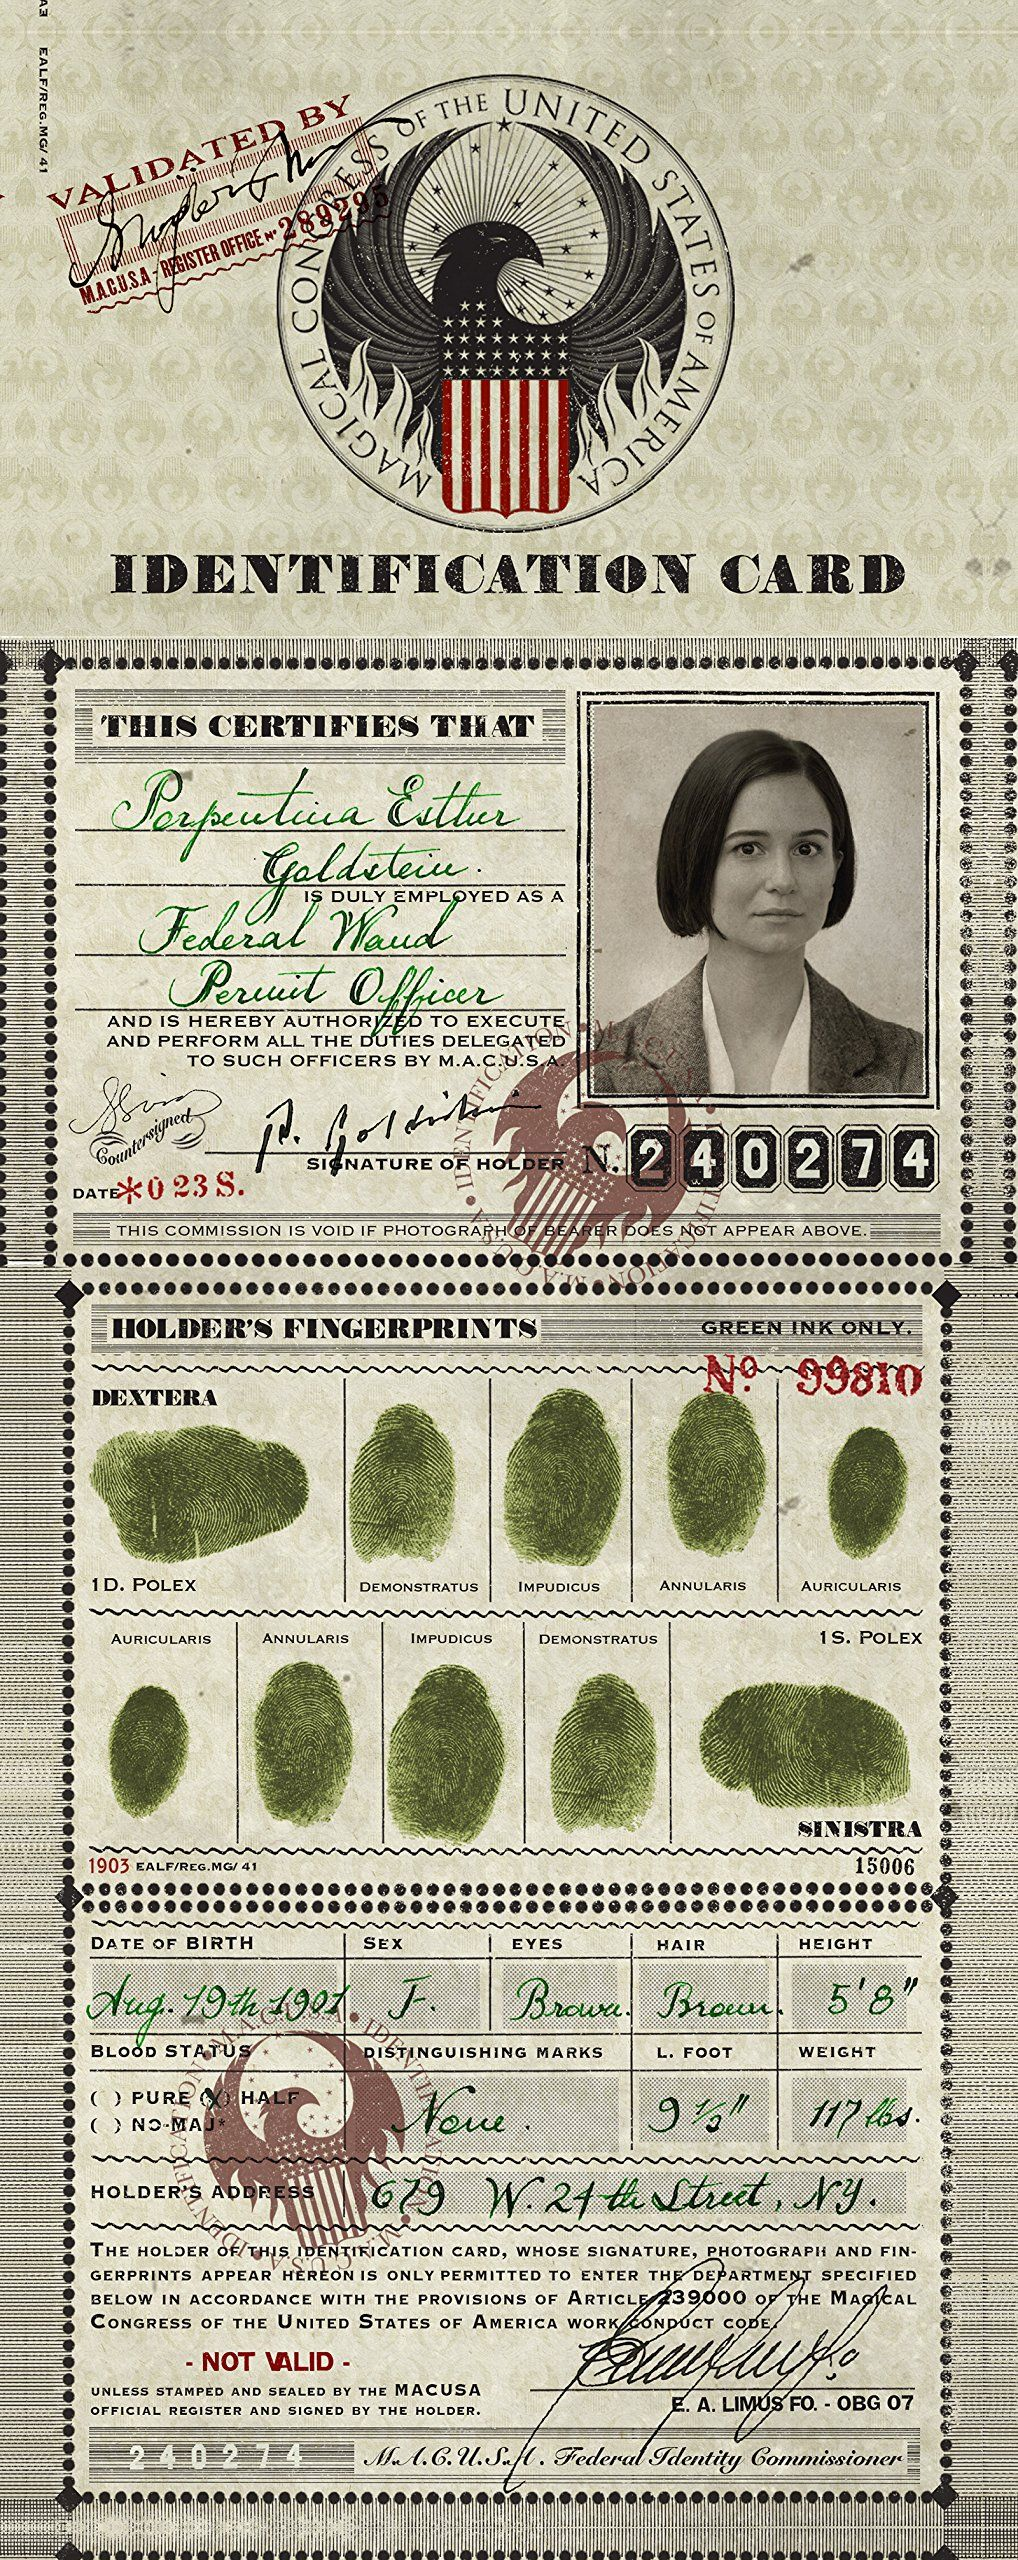 Porpentina Goldstein 39 S Macusa Identification Card Was An Official Identification Document Tina Goldstein Harry Potter Fantastic Beasts Harry Potter Fandom